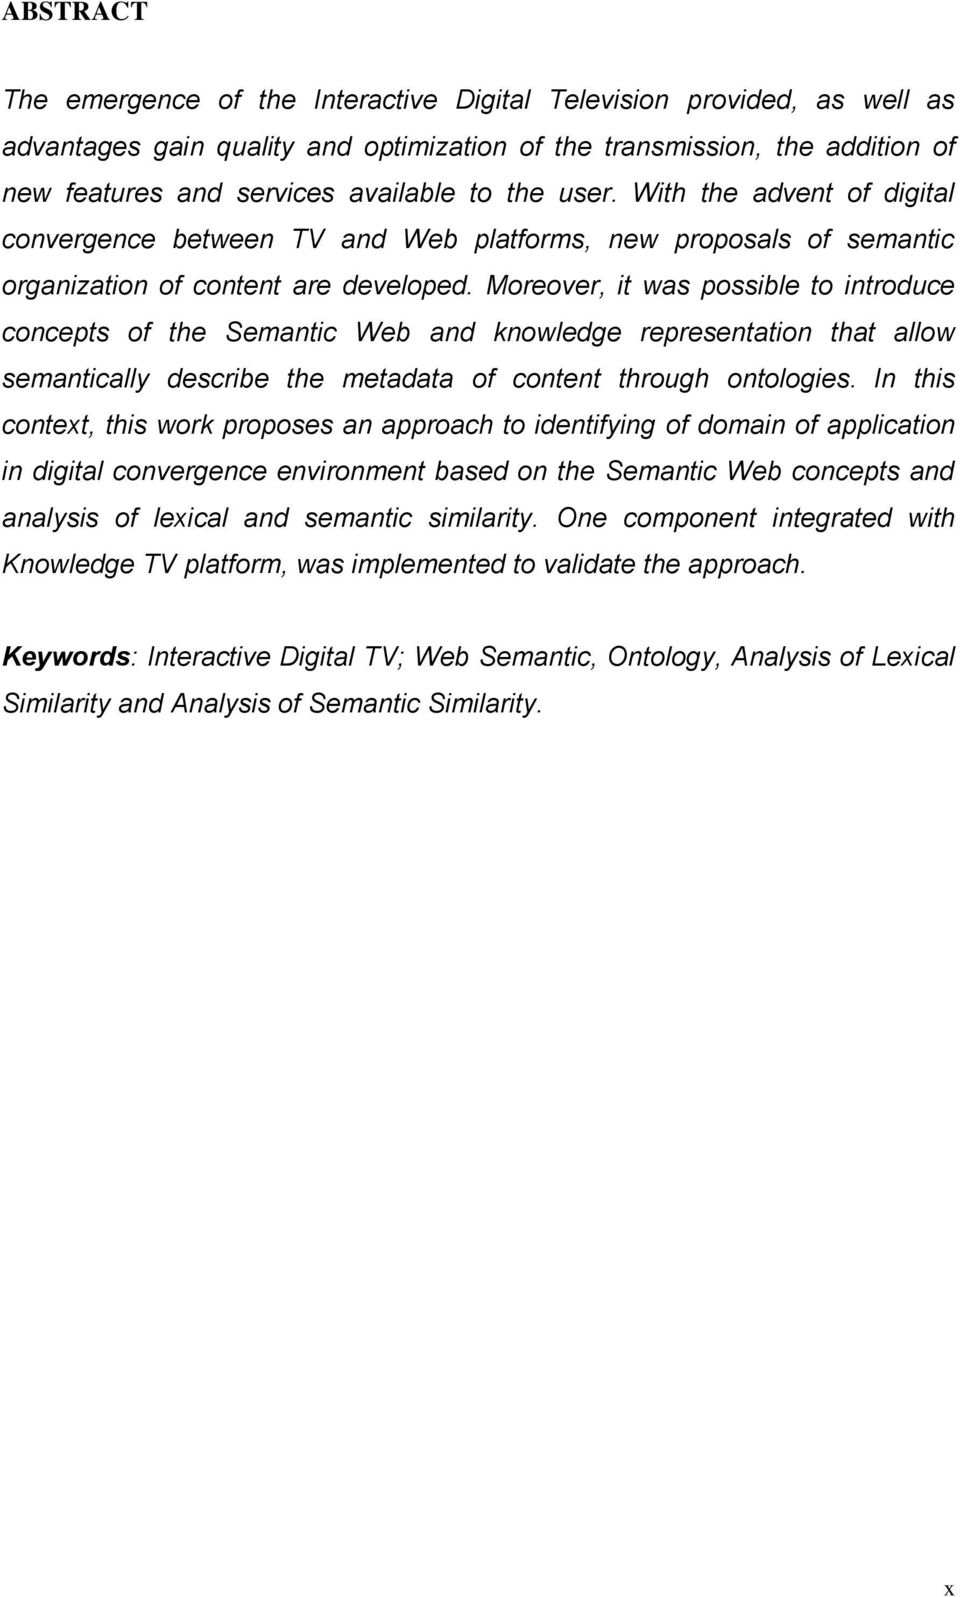 Moreover, it was possible to introduce concepts of the Semantic Web and knowledge representation that allow semantically describe the metadata of content through ontologies.